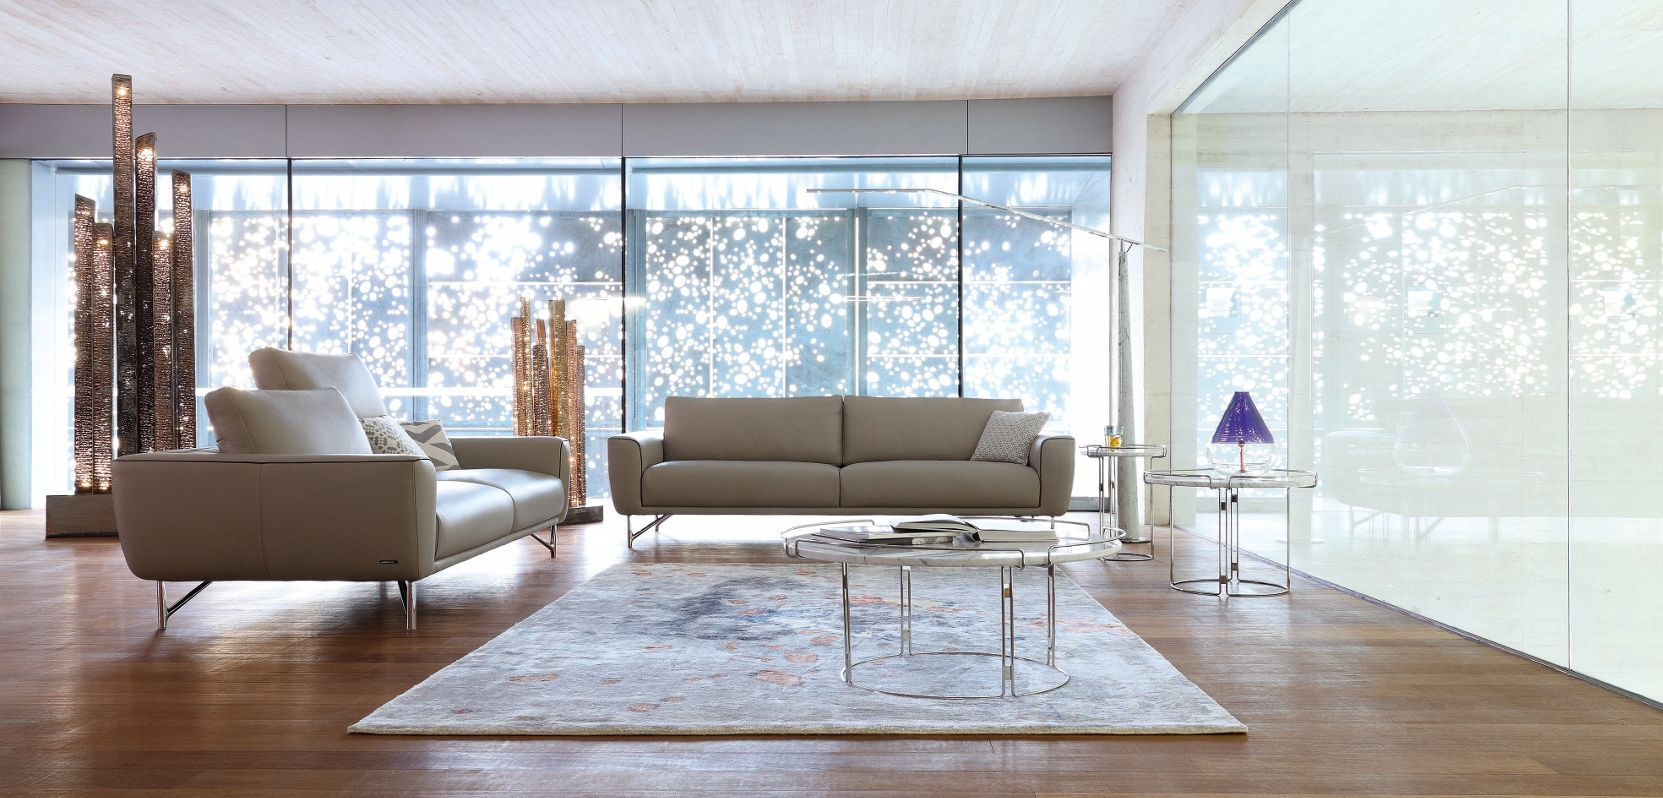 Roche Bobois - SYNTHESIS LARGE 3-SEAT SOFA design R.Tapinassi & M ...